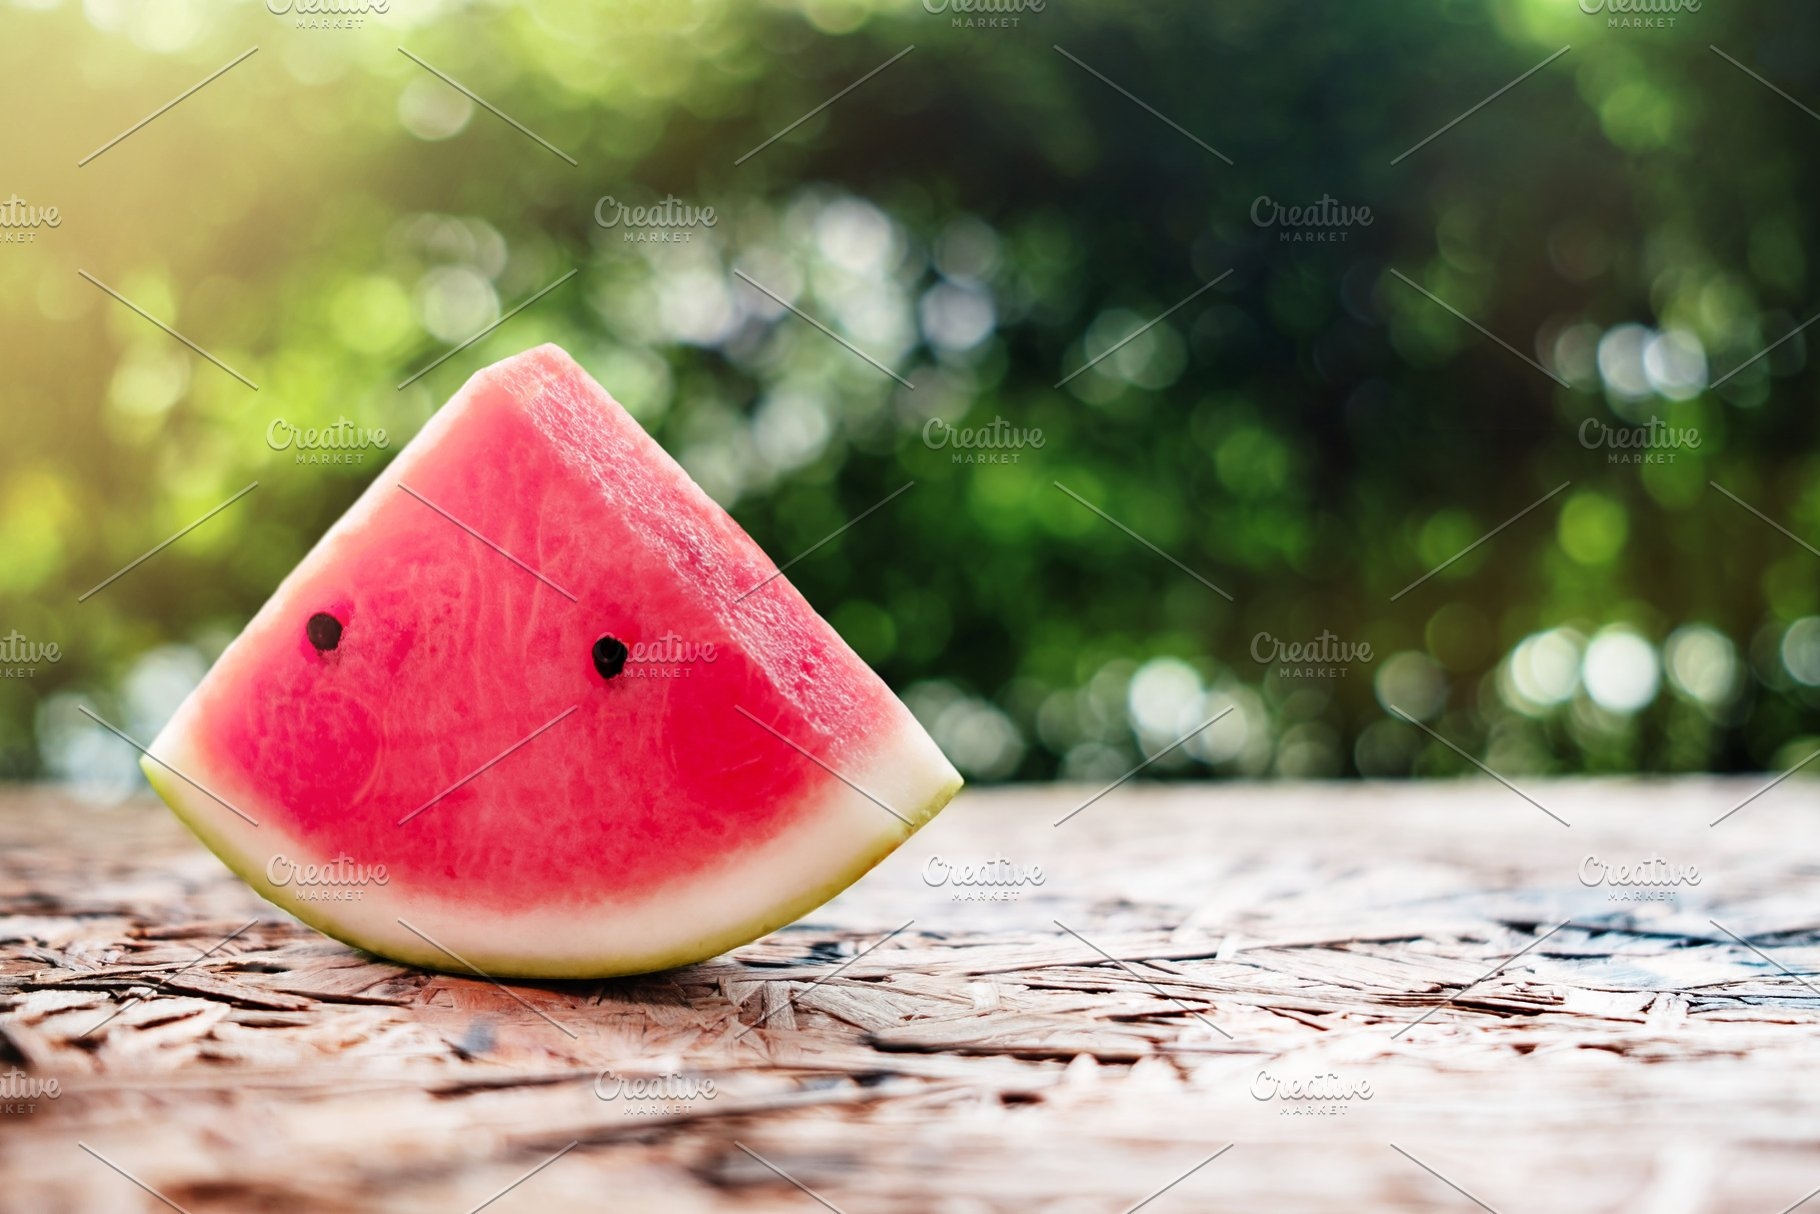 Watermelon Sliced On Wooden Table High Quality Food Images